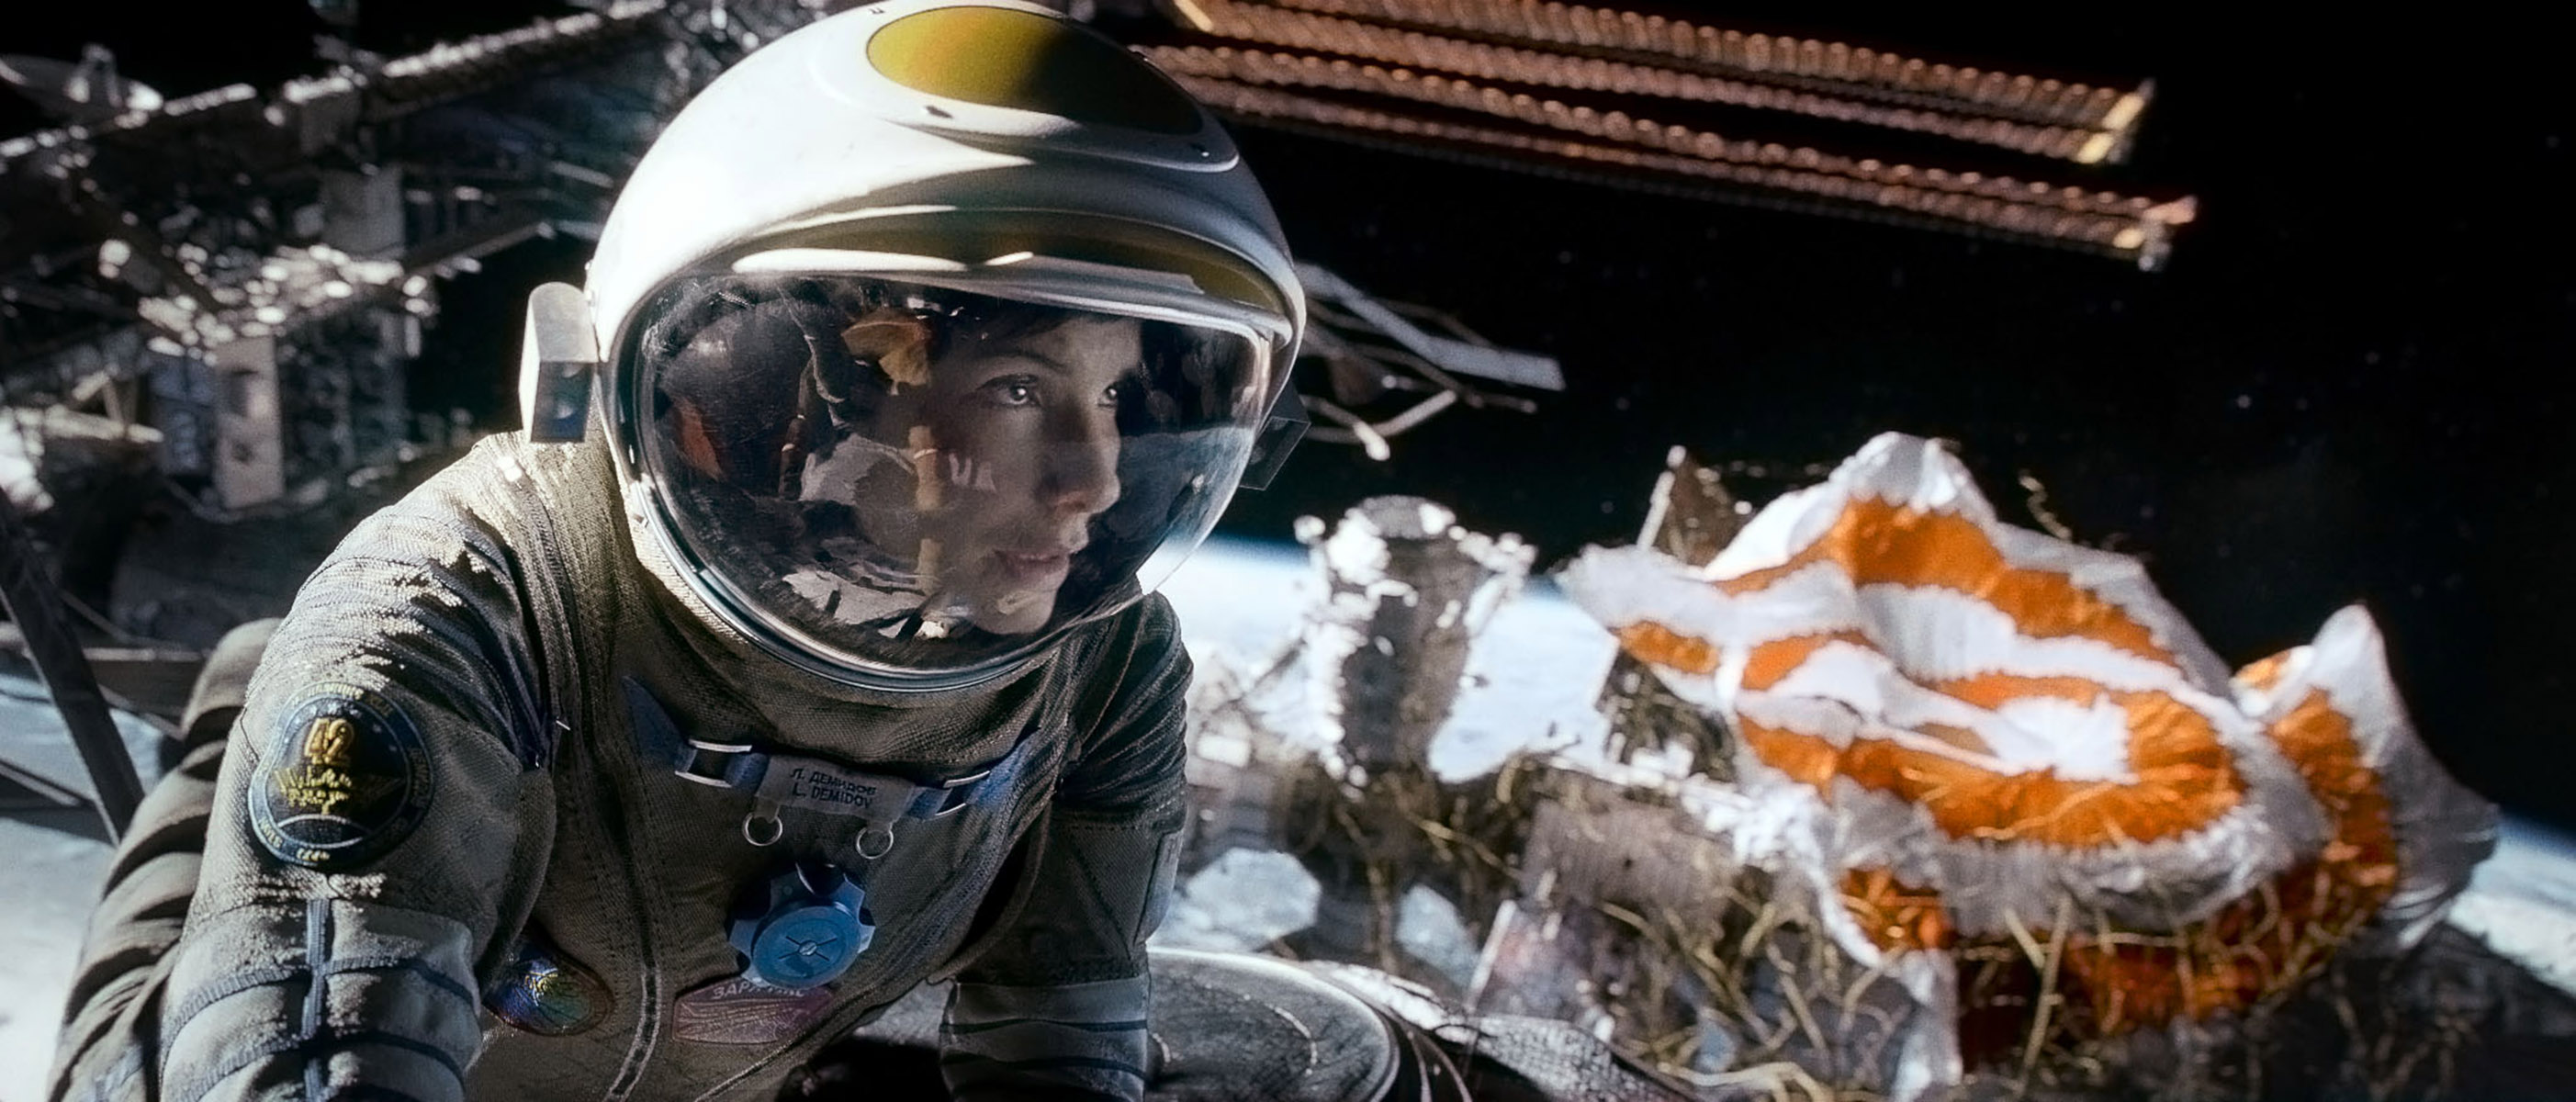 Clean Up Space Junk or Risk Real-Life 'Gravity' Disaster, Lawmakers Say